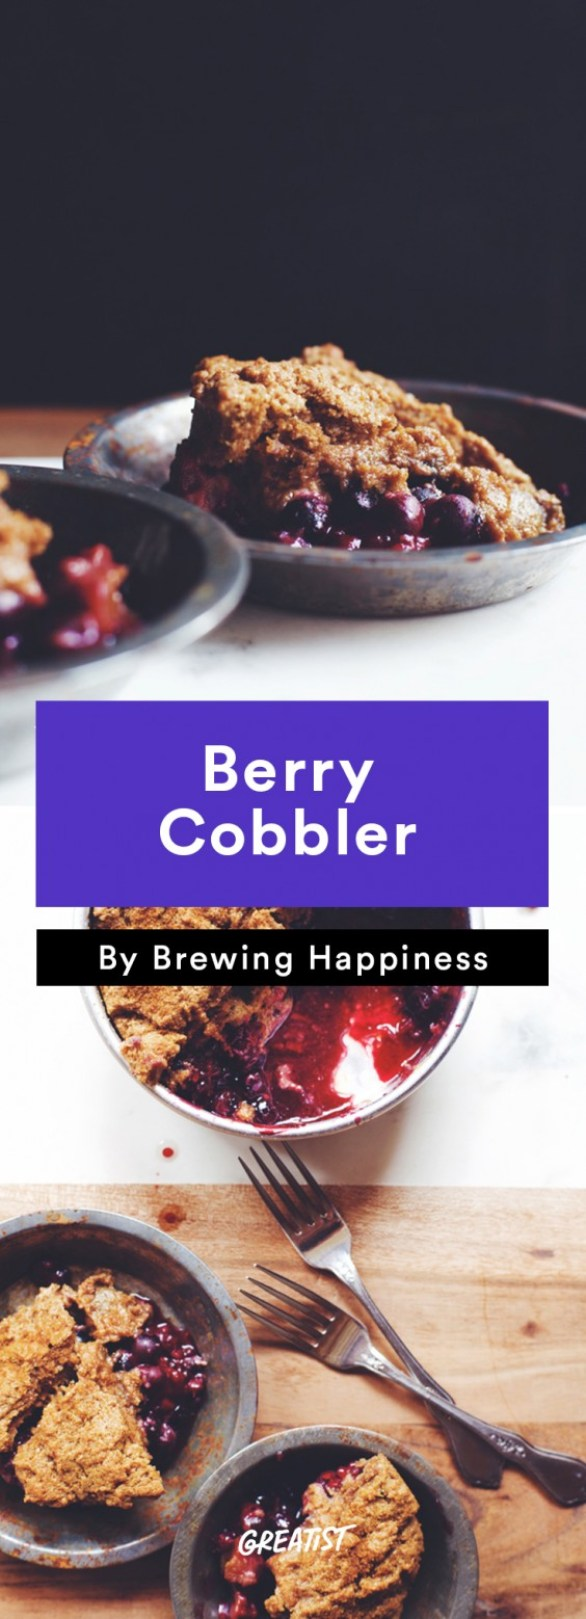 brewing happiness: Berry Cobbler